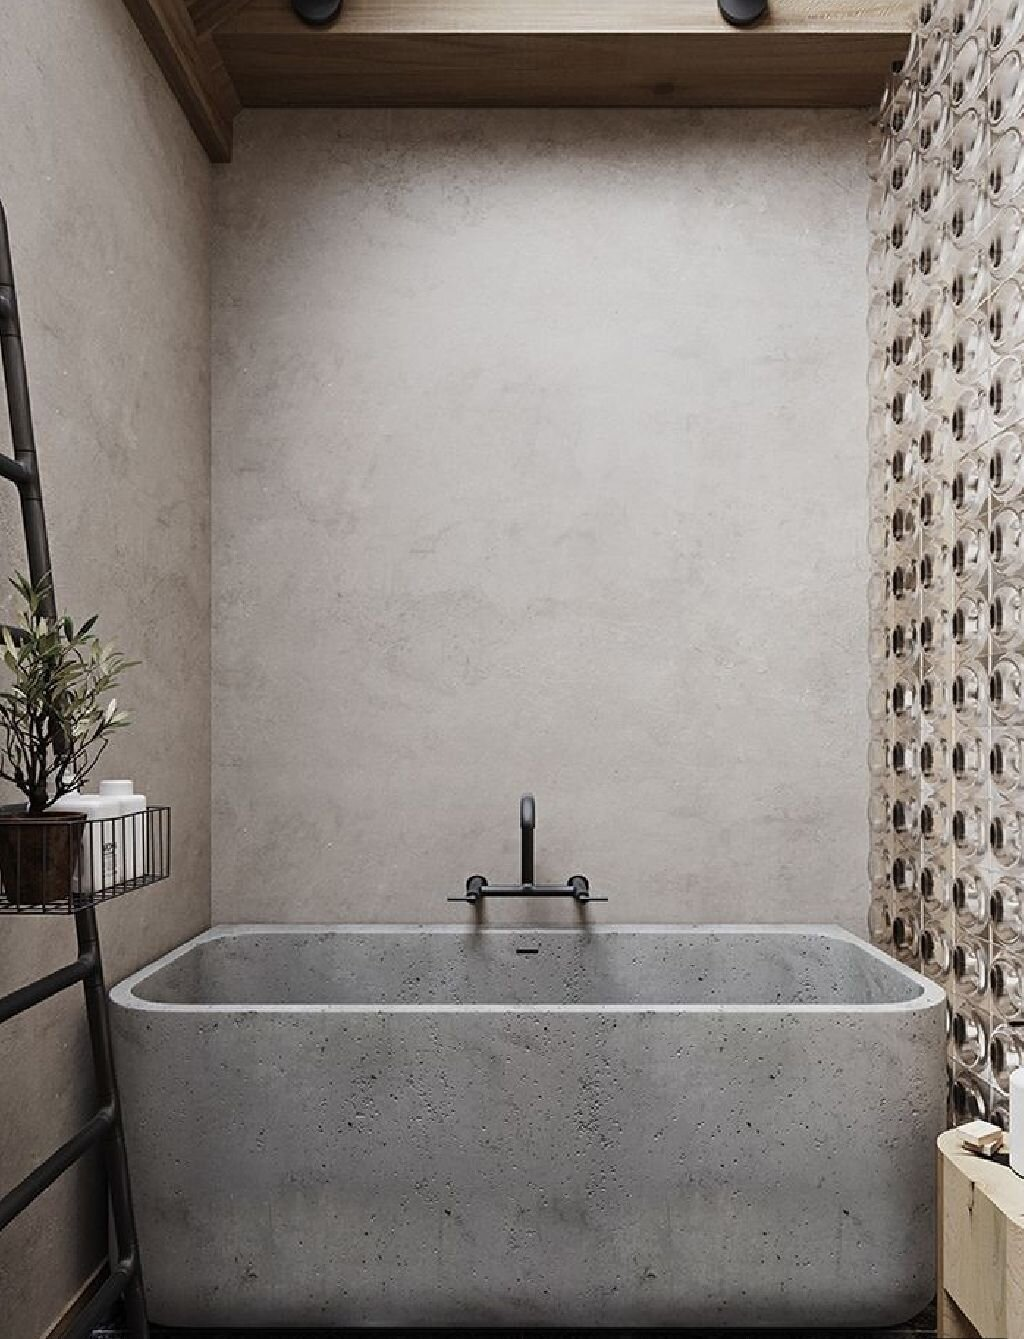 I love this concrete bath from @viaparissi but wonder if it might be a bit much in a family bathroom?